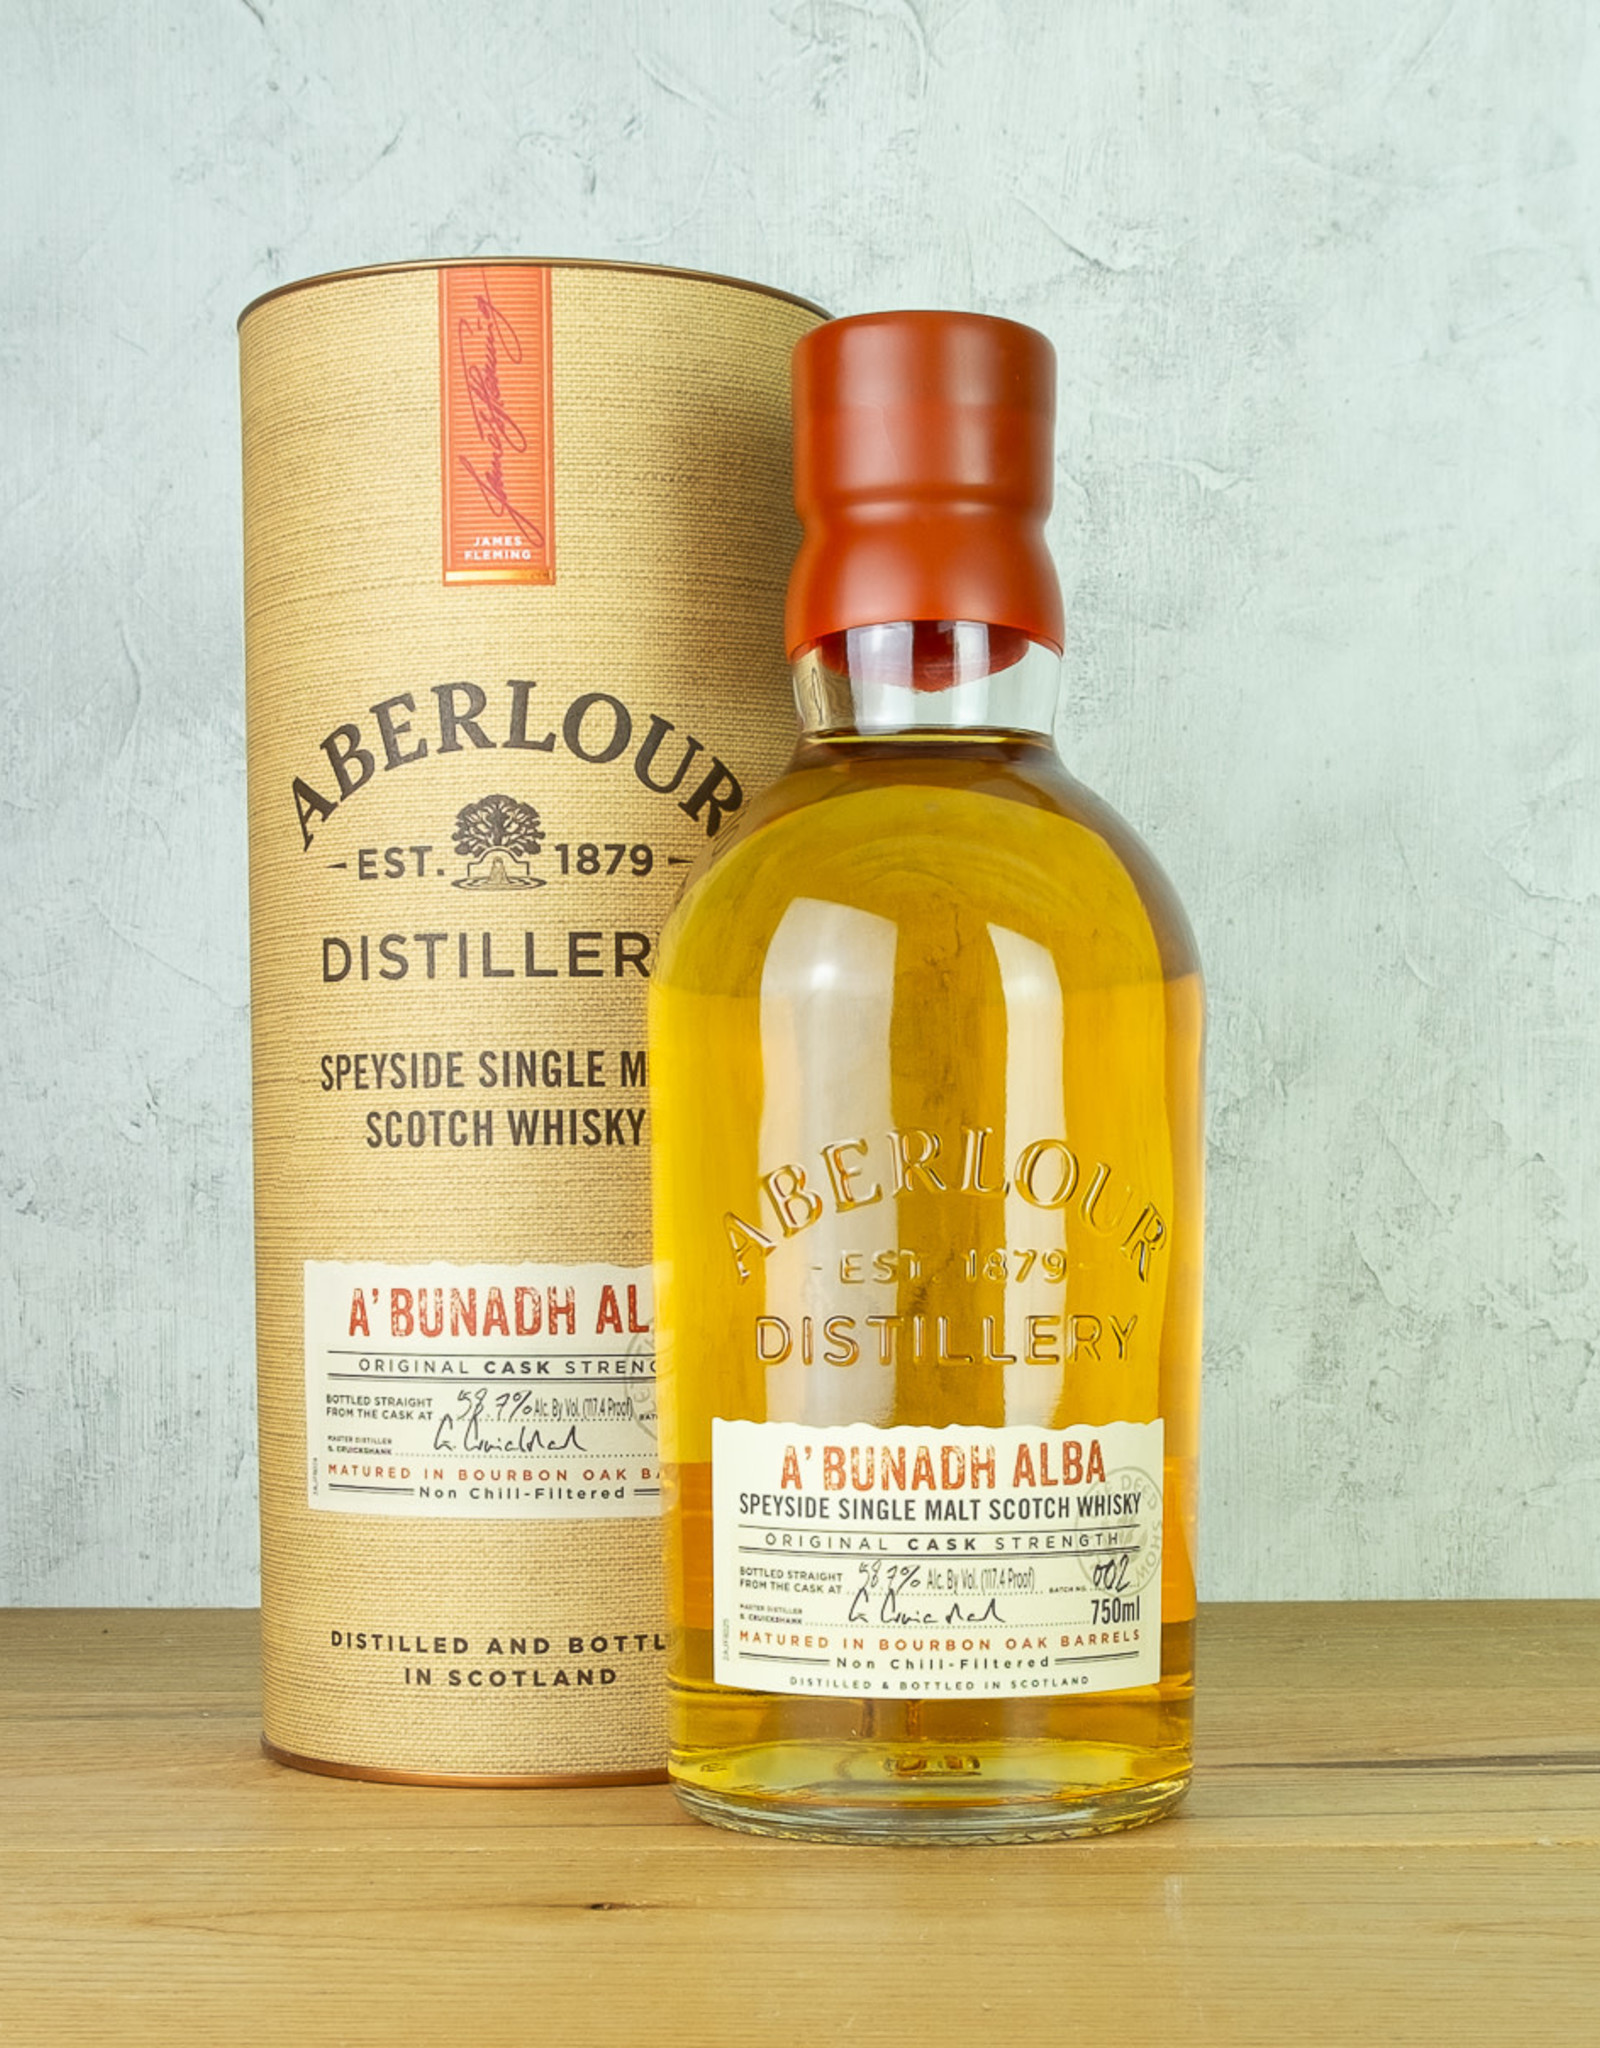 Aberlour A'Bunadh Alba Single Malt Whisky